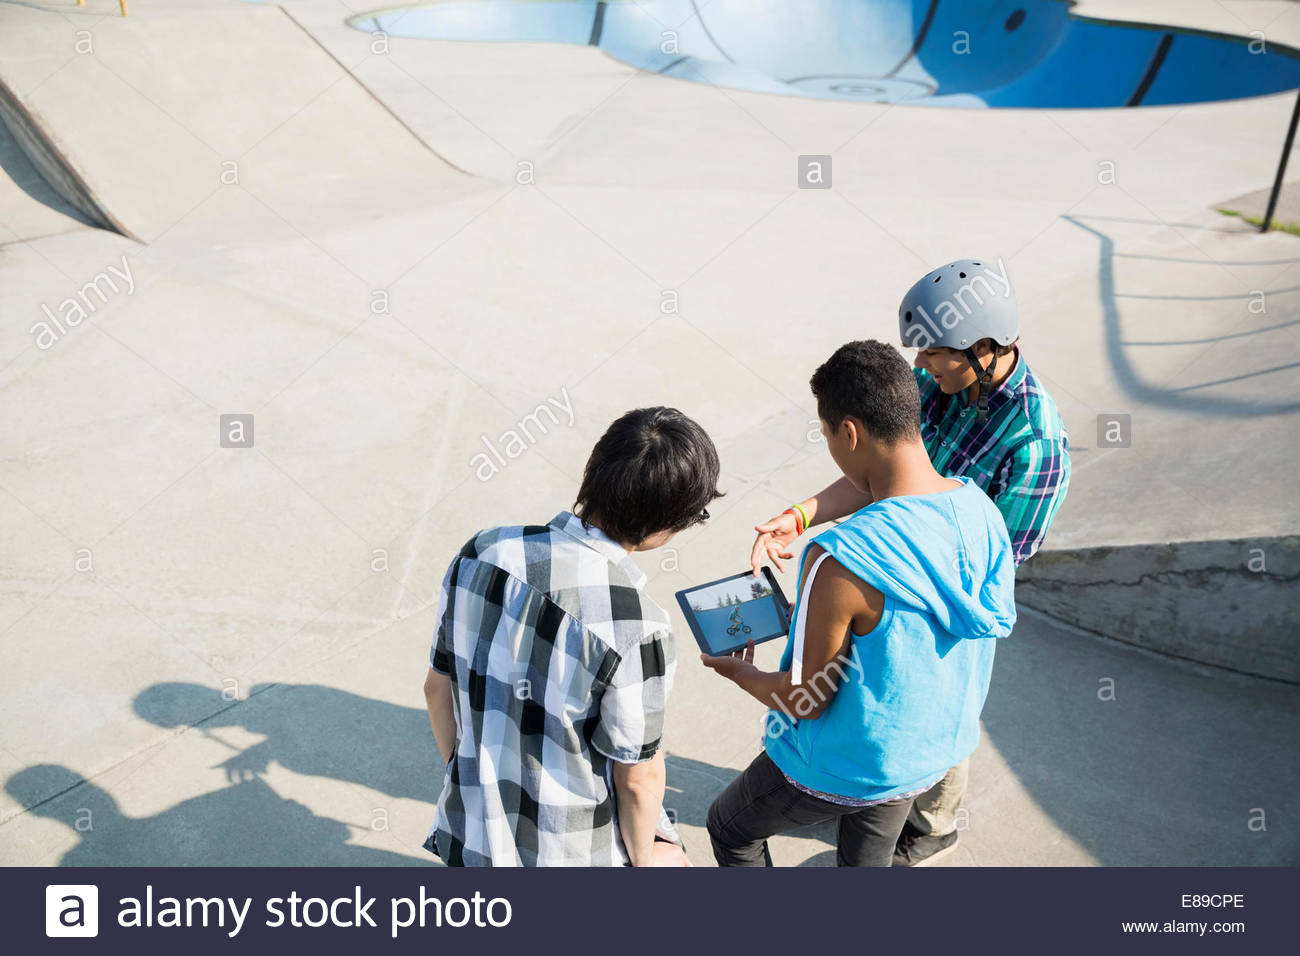 Teenage boys with digital tablet at skateboard park - Stock Image